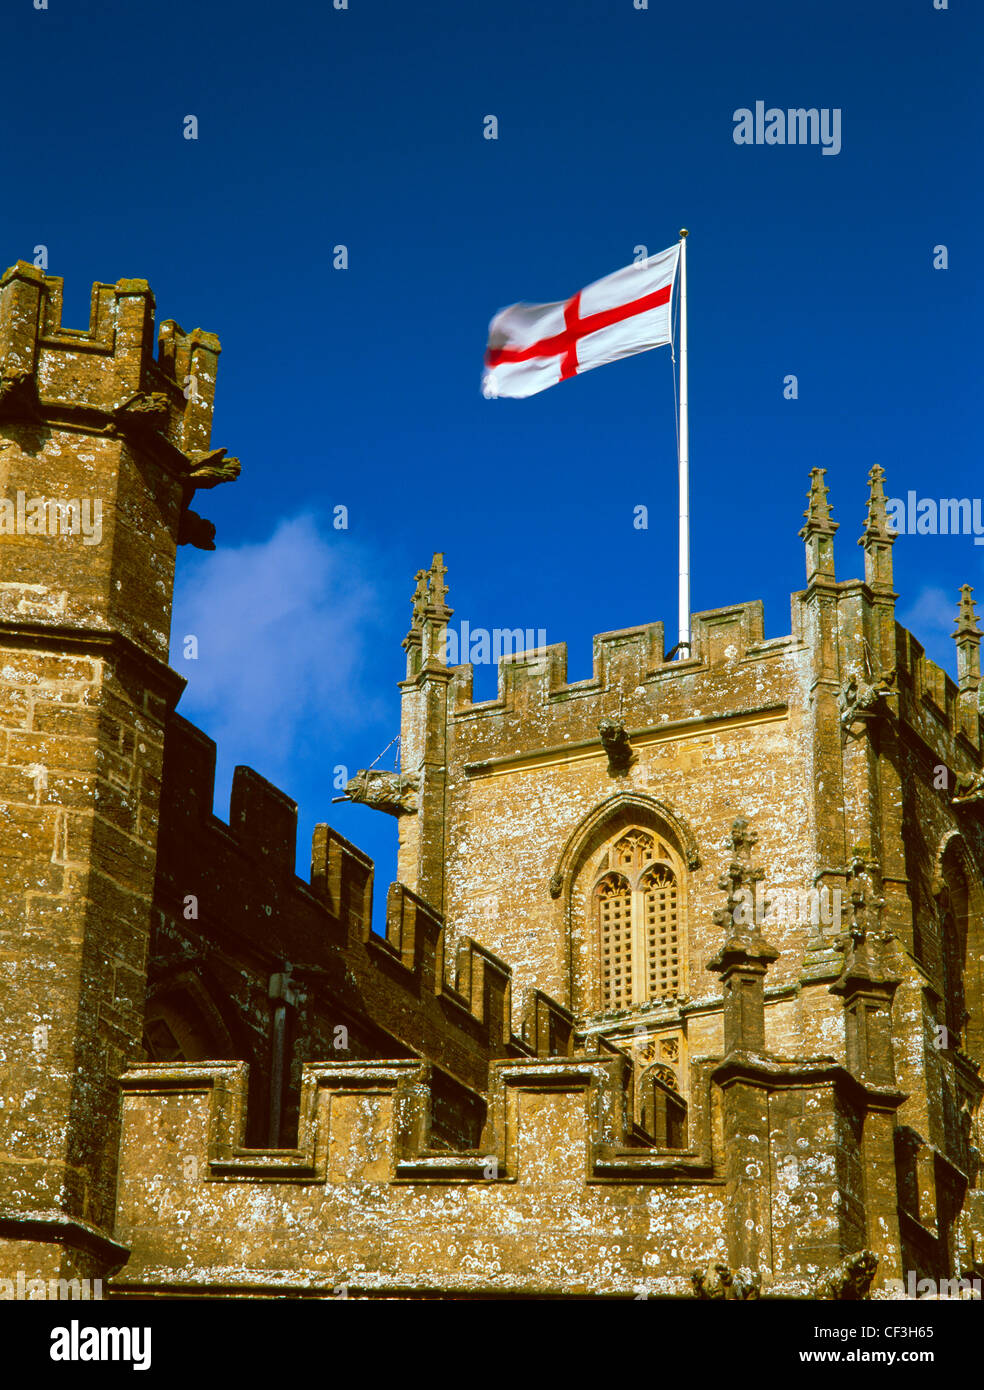 The flag of St George flying from the tower of St Bartholomew's late Medieval church which was originally founded - Stock Image